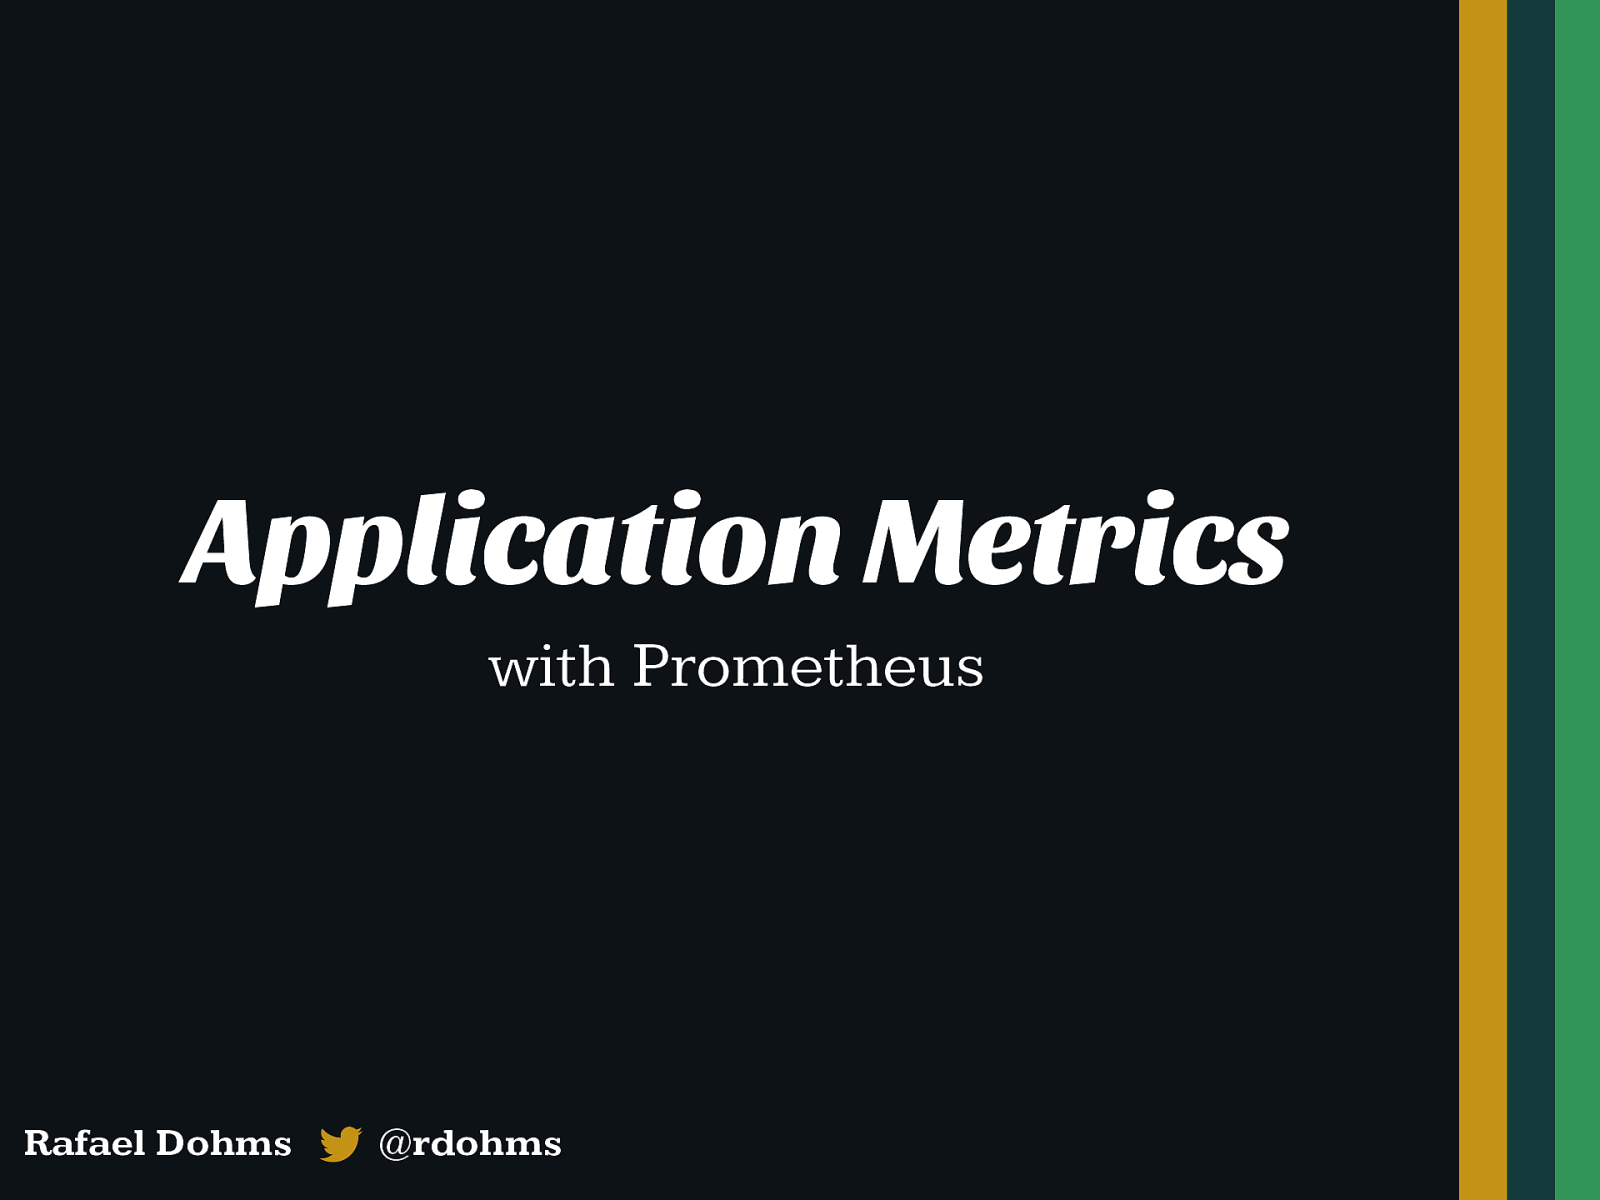 Application Metrics (with Prometheus examples)